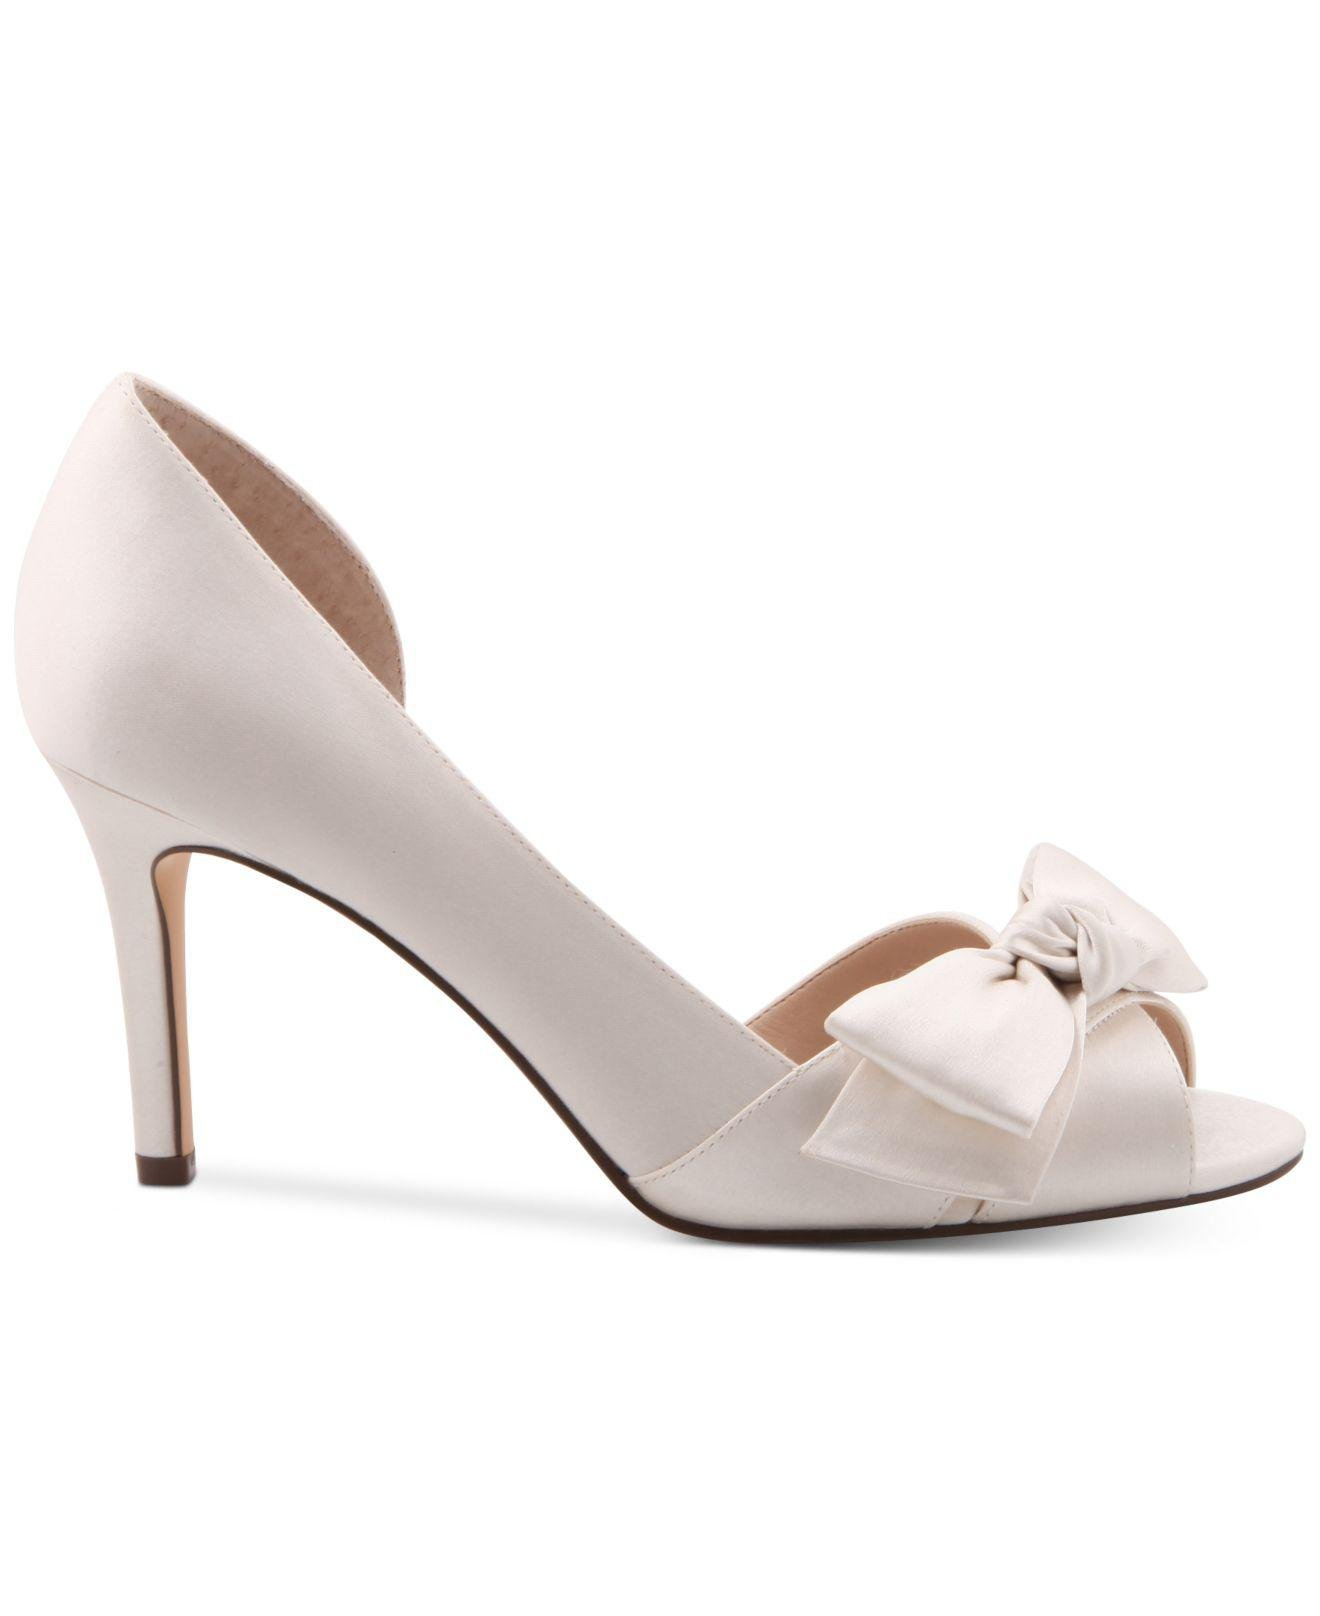 c9b6c9ecf5a51 Nina Forbes 2 Bow Peep-toe D'orsay Evening Pumps in White - Lyst